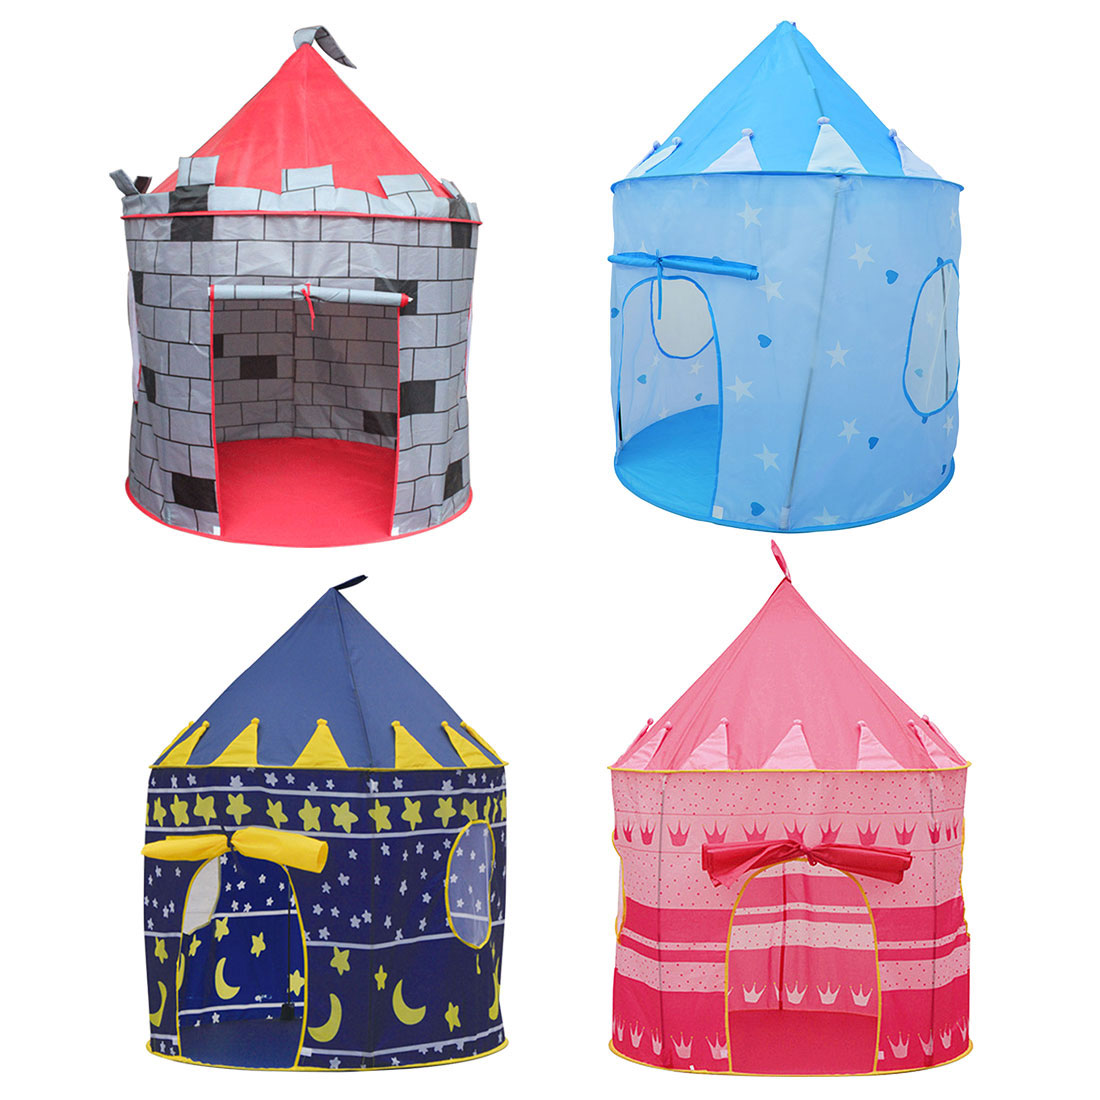 4 Colors Play Tent Portable Foldable Tipi Prince Folding Tent Children Boy Castle Cubby Play House Kids Gifts Outdoor Toy Tents children folding basketball toys shooting toy tents basketball stand kids play tent